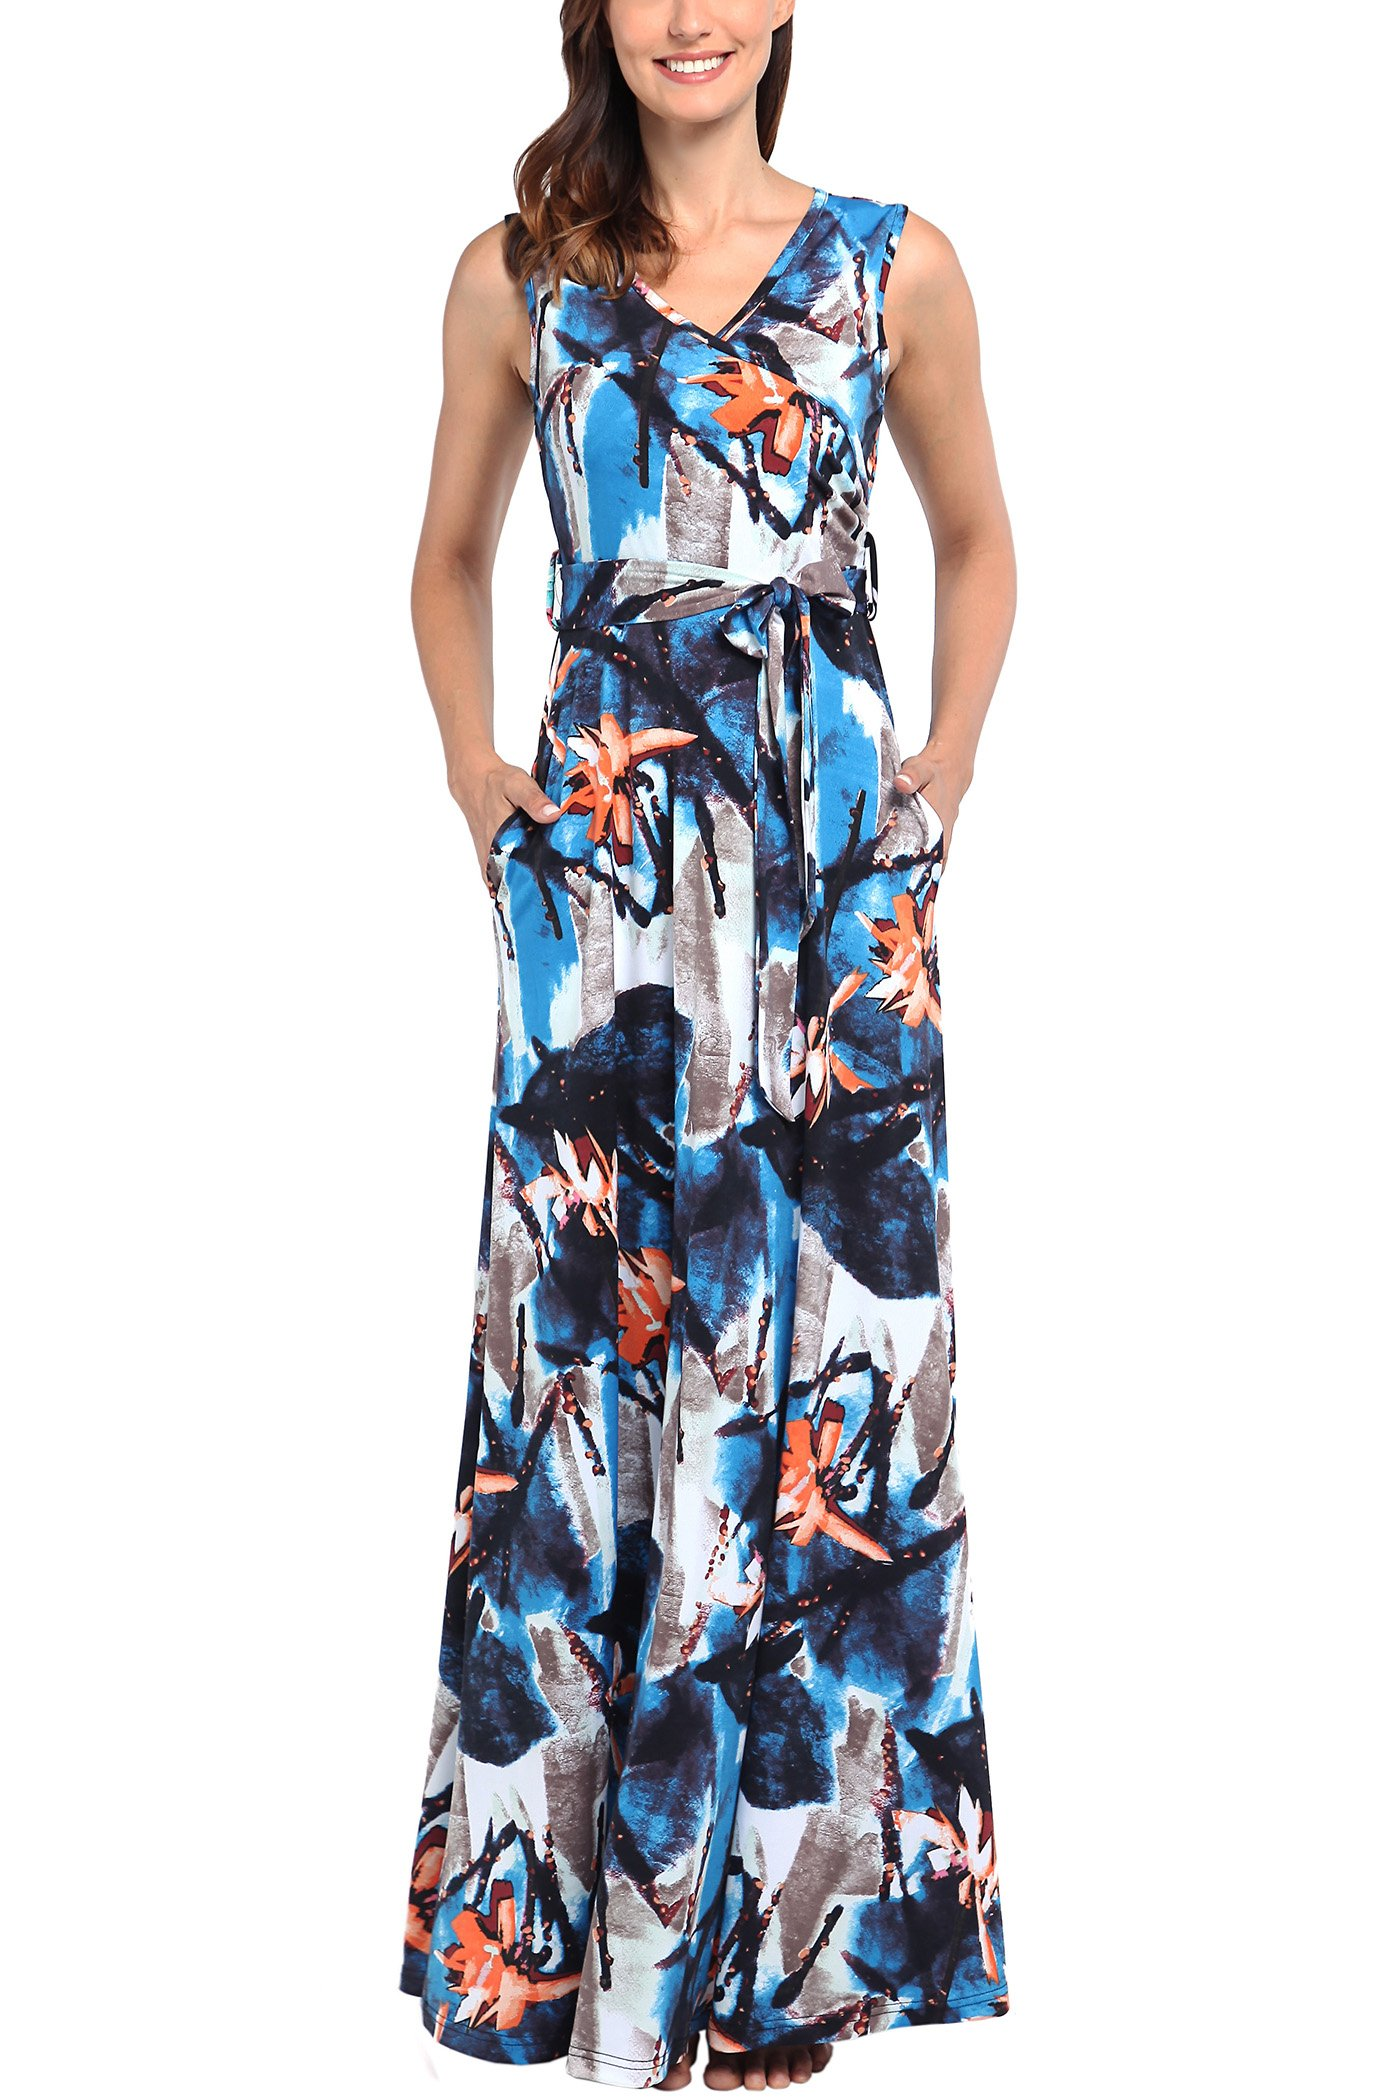 Comila Casual Summer Dresses for Women, Retro Floral Printed Loose Tank Maxi Dresses Elegant Sleeveless Evening Dress Sexy Warp V Neck Bohemain Style Casual Dress with Pockets Blue XL(US16-18)